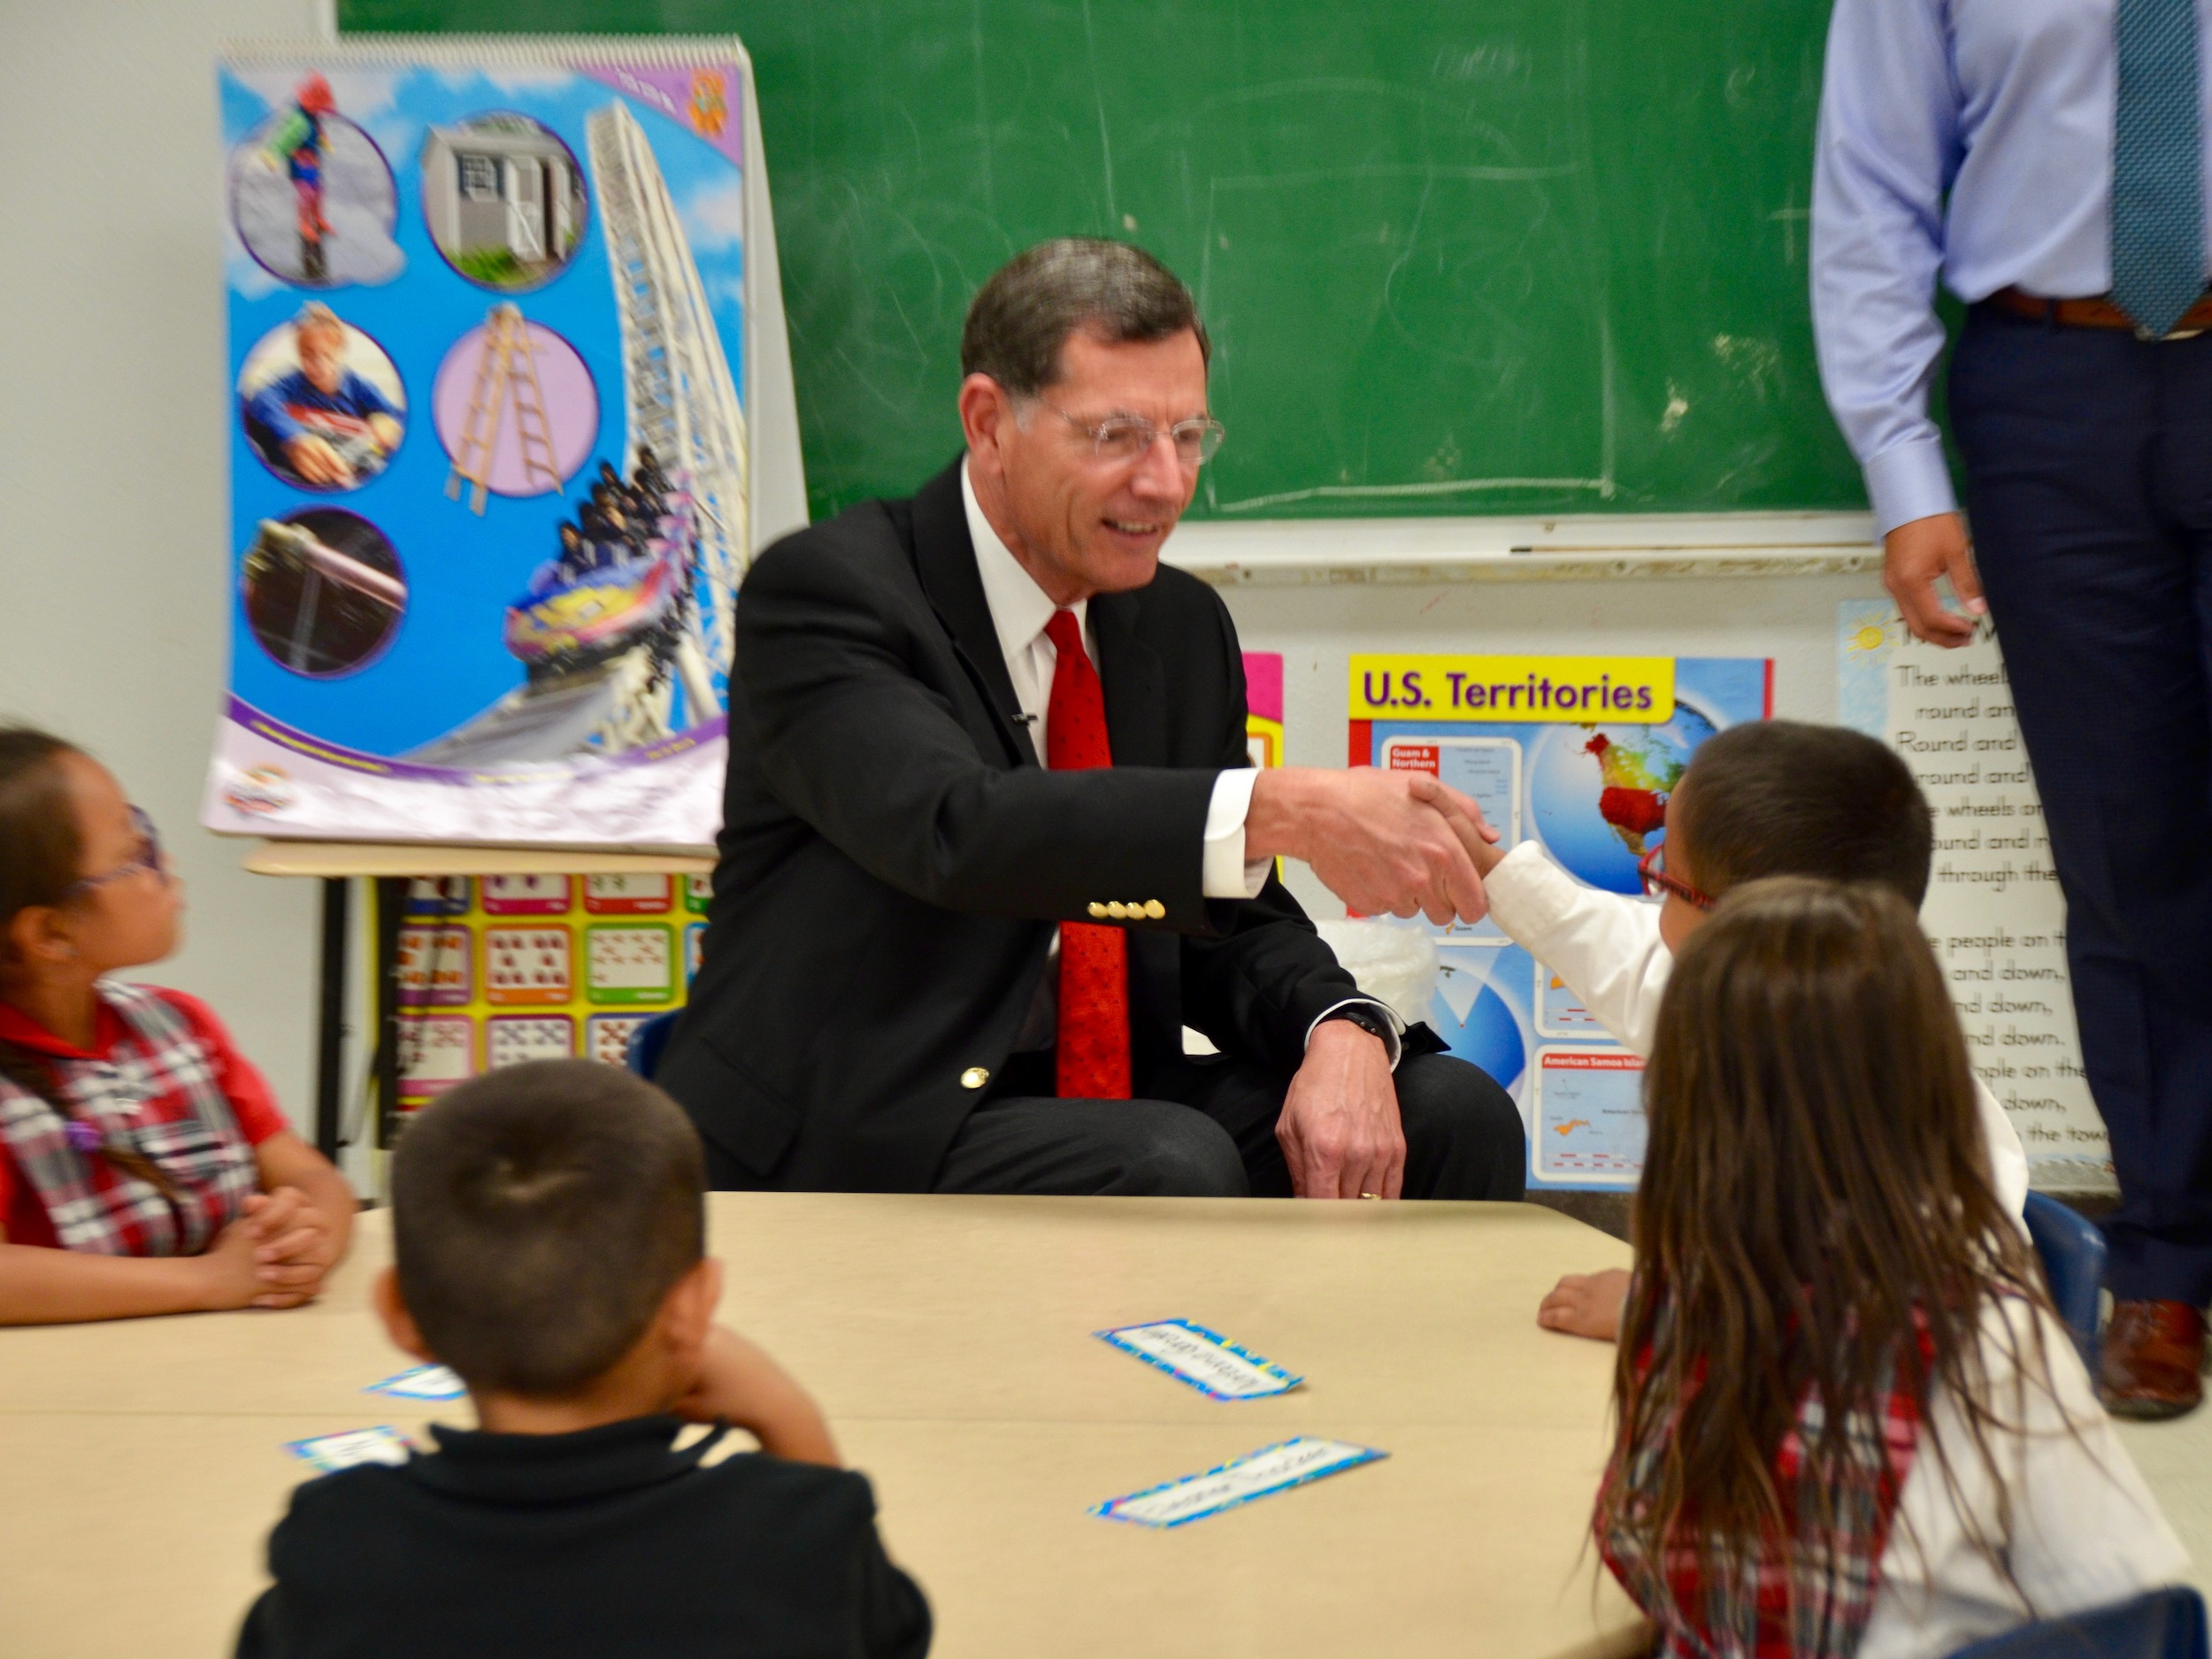 John Barrasso: Working together for better lives in Indian Country